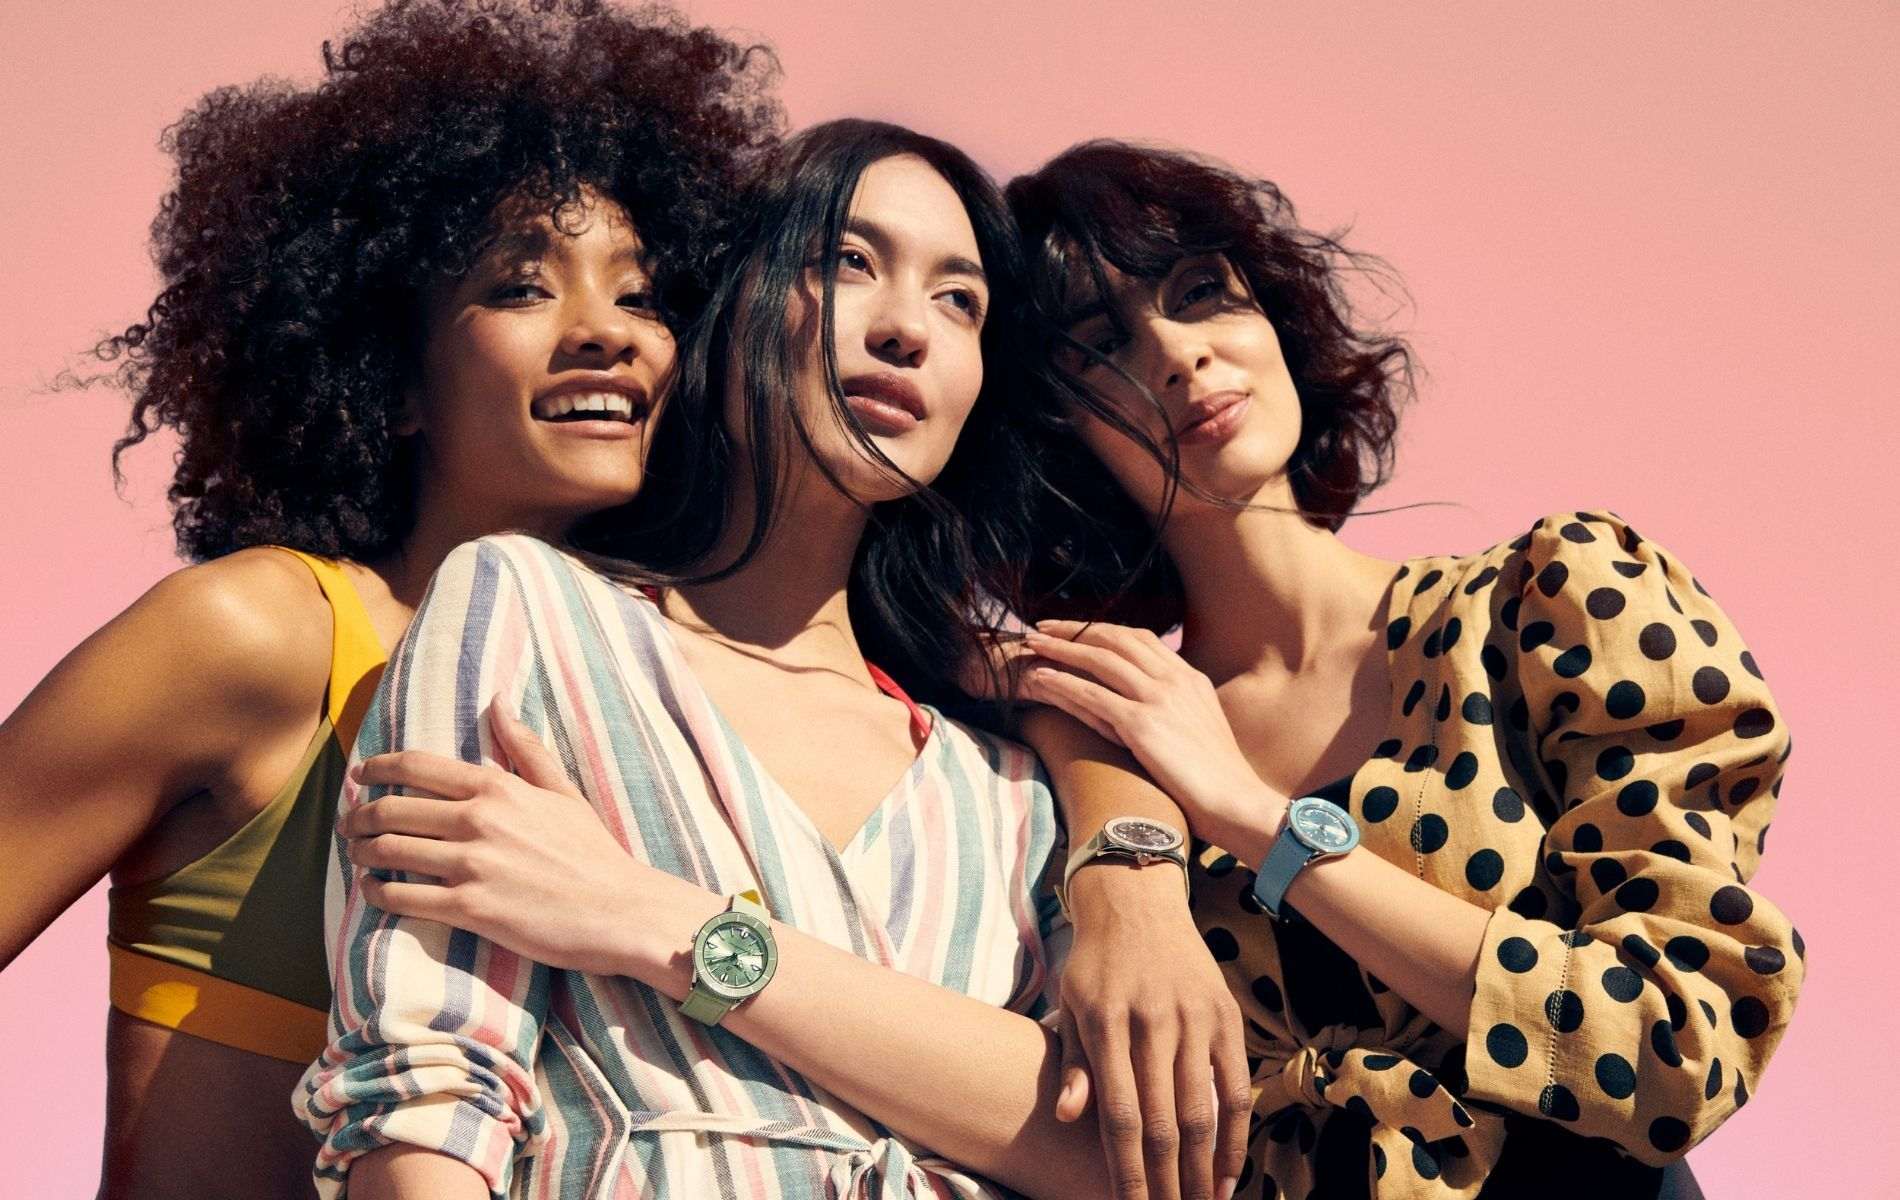 Breitling launches a summer capsule collection for women